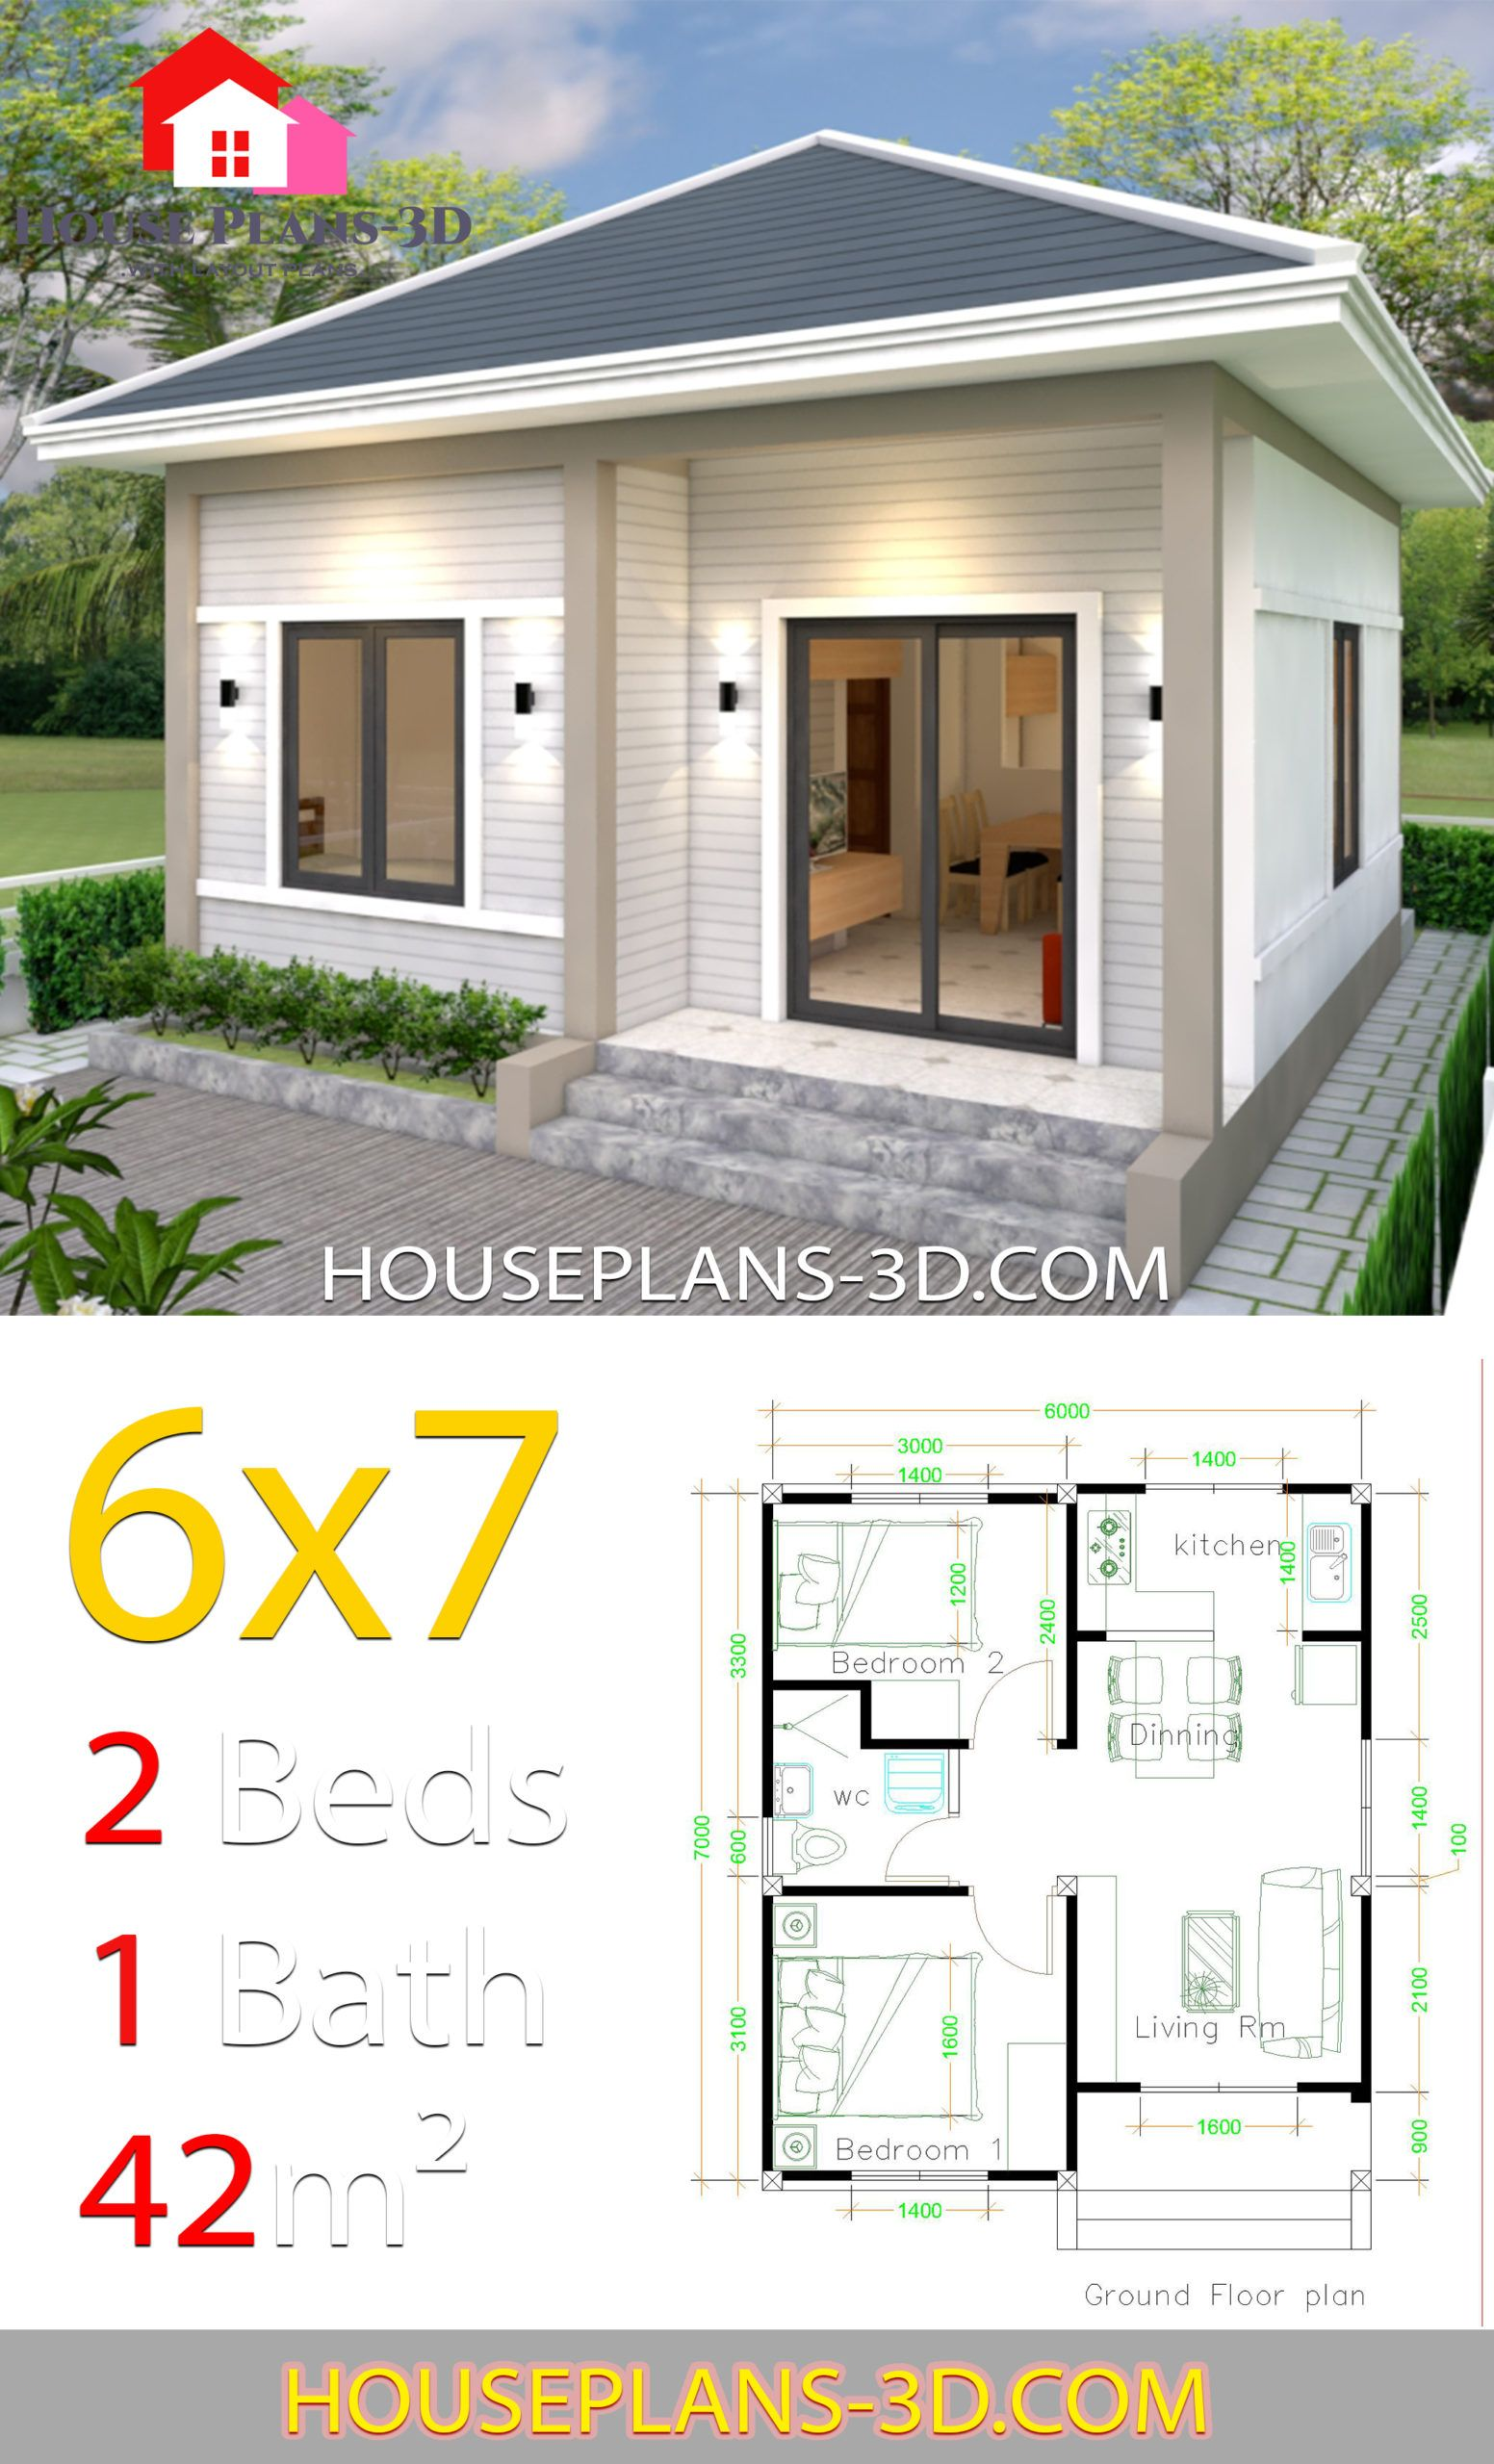 Simple House Plans 6x7 With 2 Bedrooms Hip Roof House Plans 3d Simple House Design Modern Small House Design Small House Design Plans